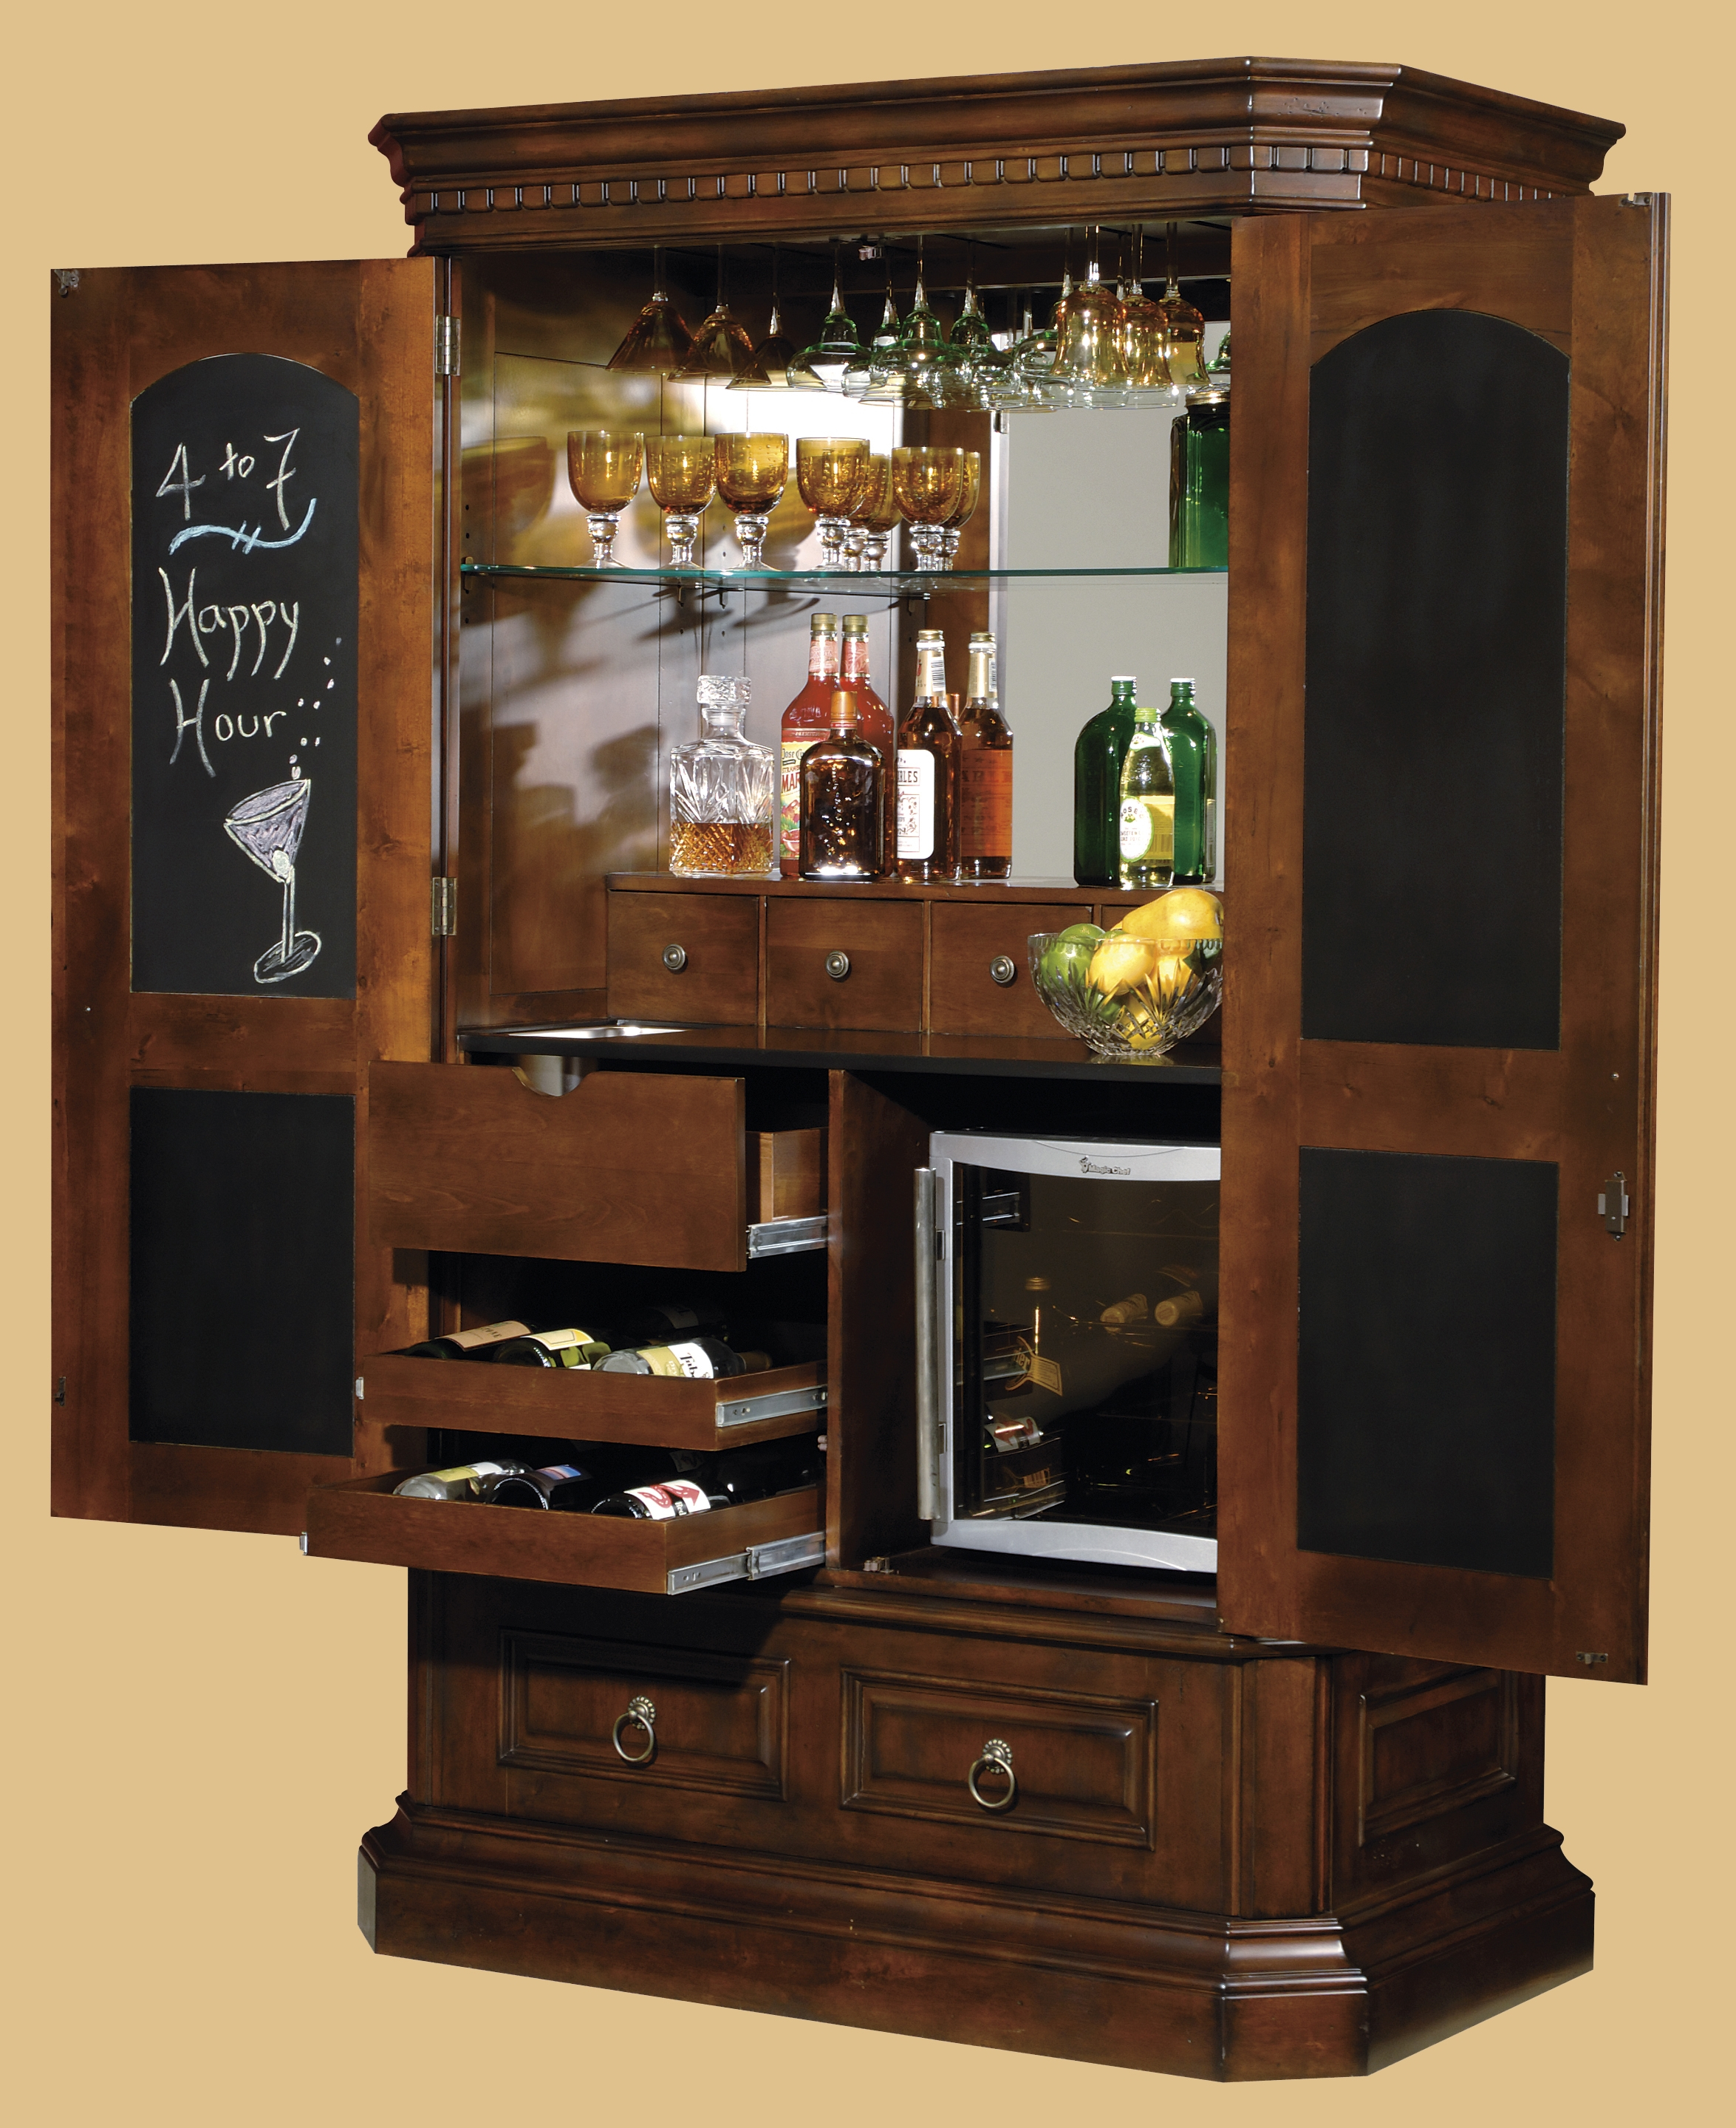 Tall Bar Cabinet With Chalkboard Interior Door Plus Glass throughout sizing 2350 X 2880